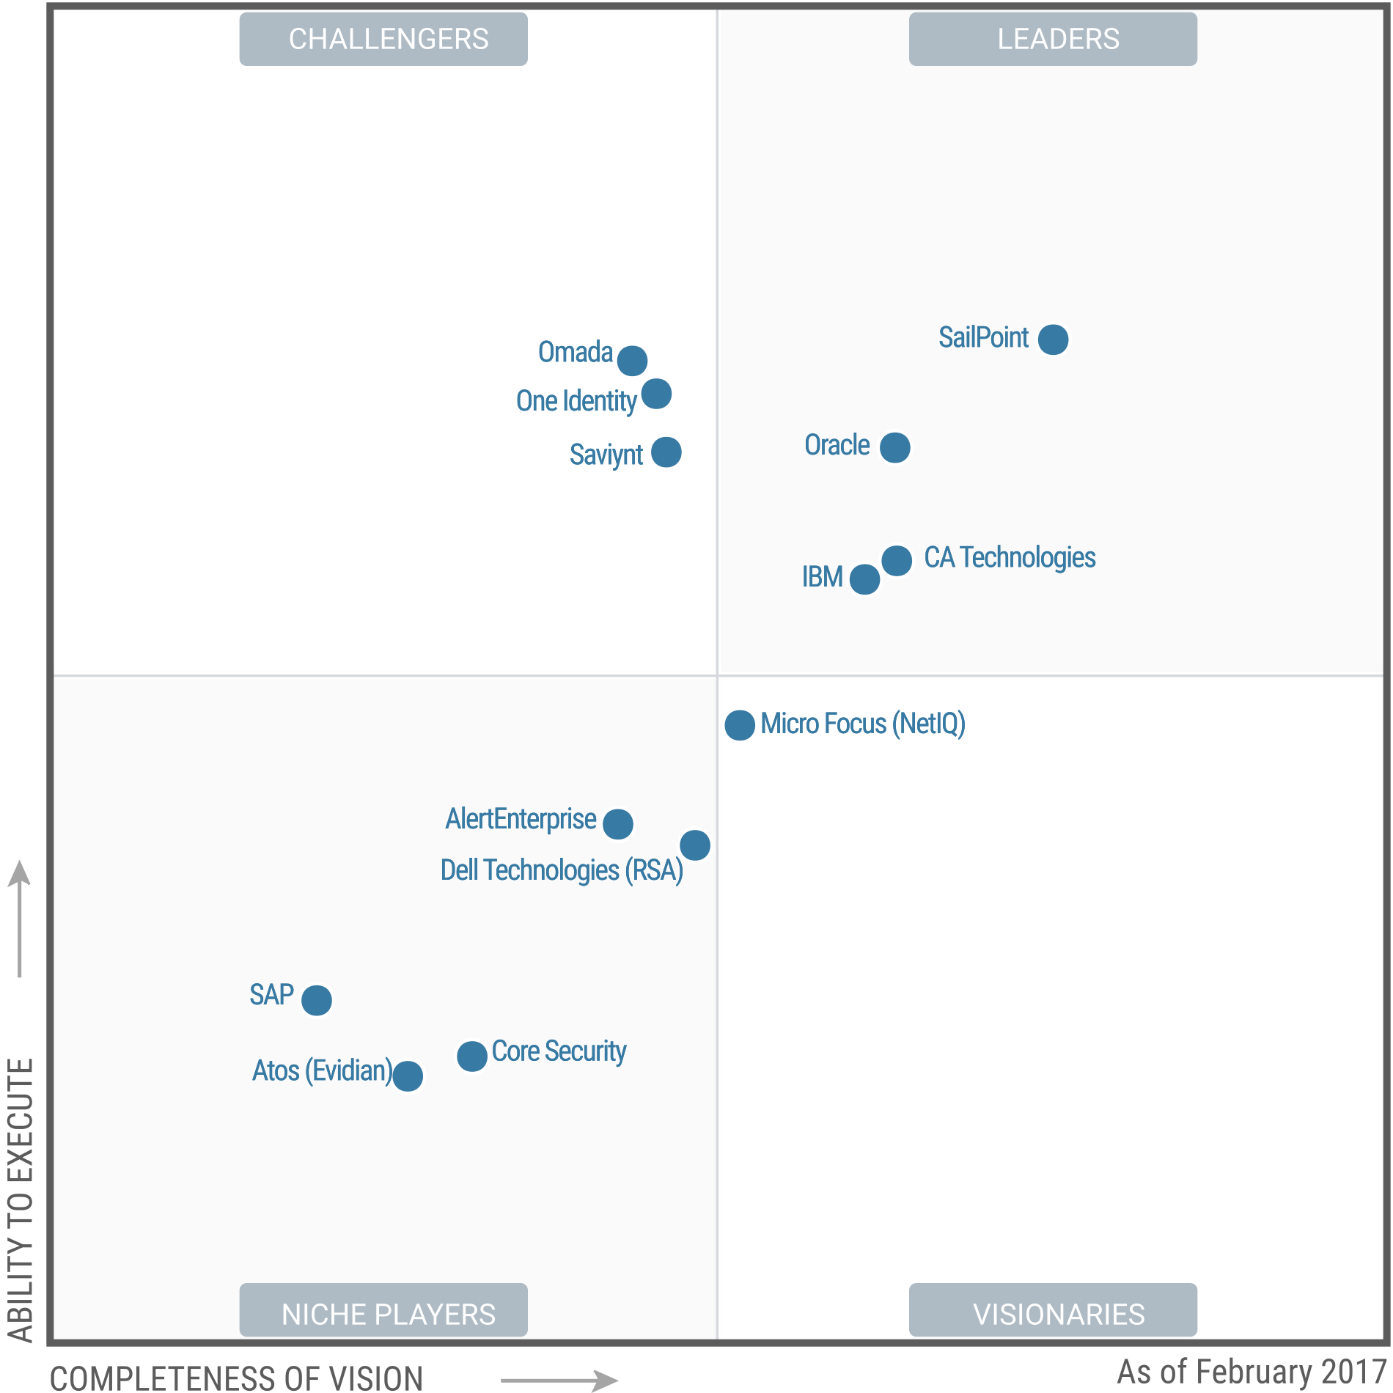 Magic Quadrant for Identity Governance and Administration 2017 (G00302686)